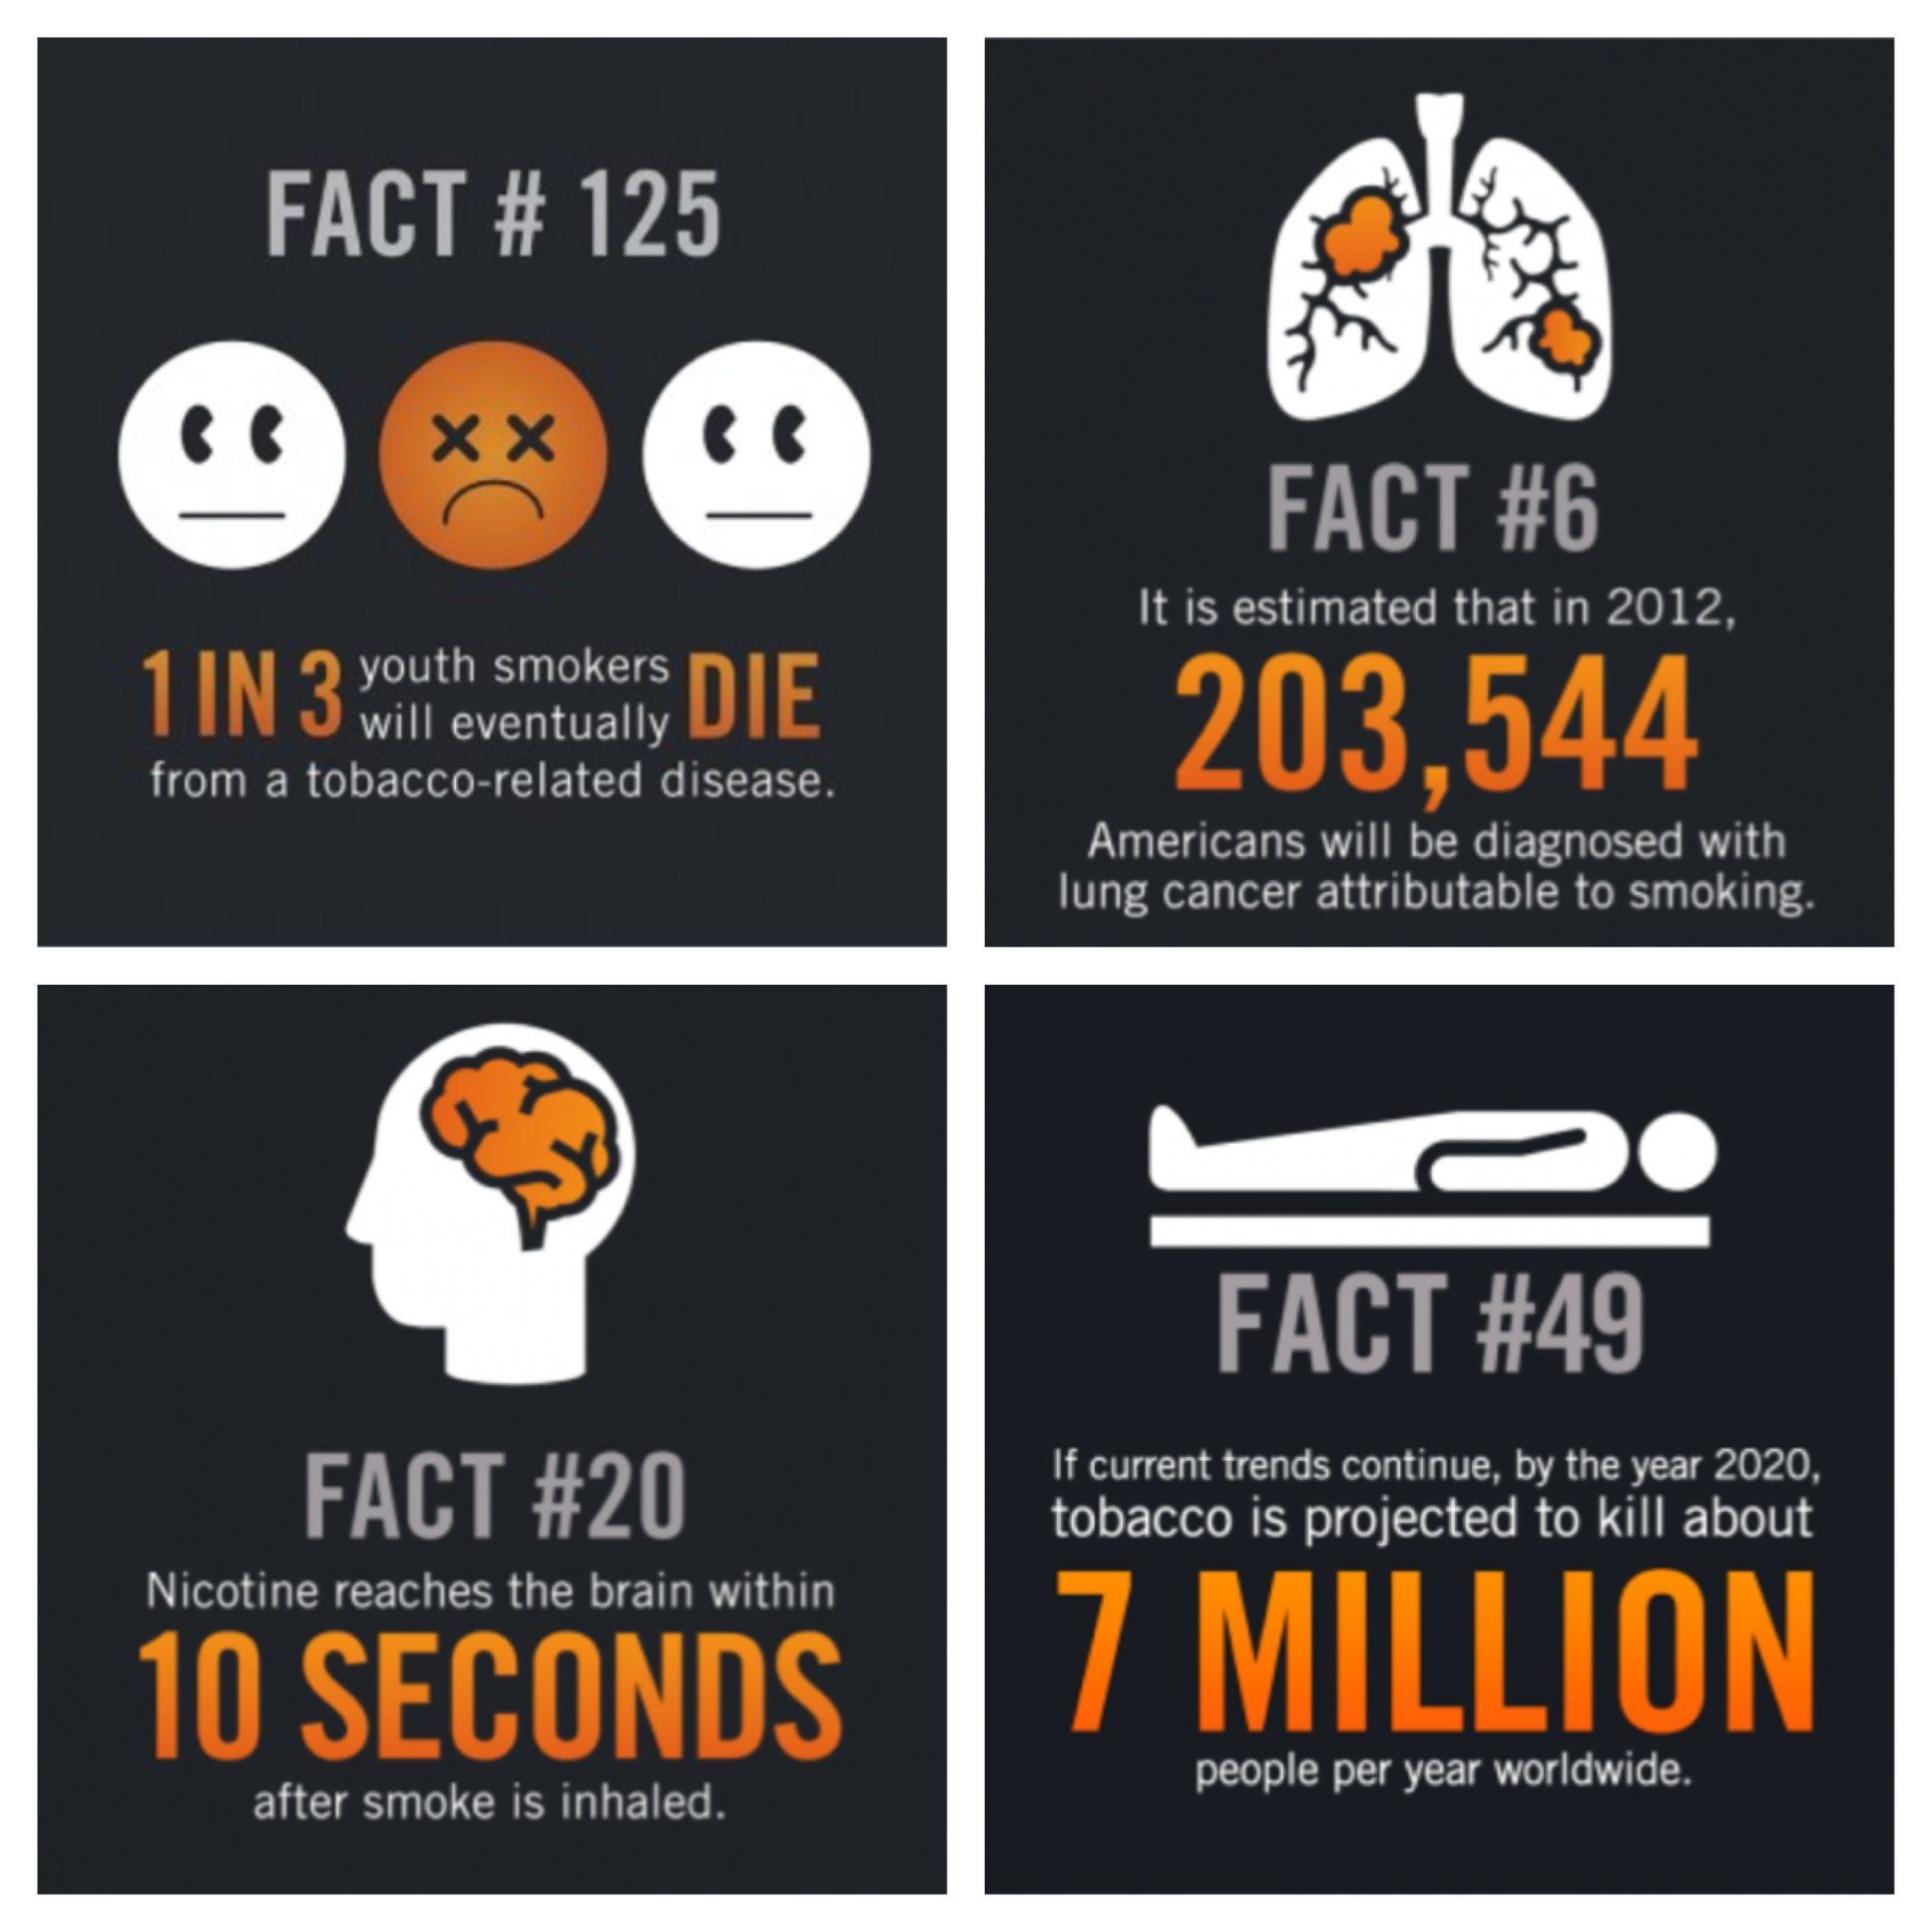 facts about cigarettes - Google Search | facts | Pinterest ...